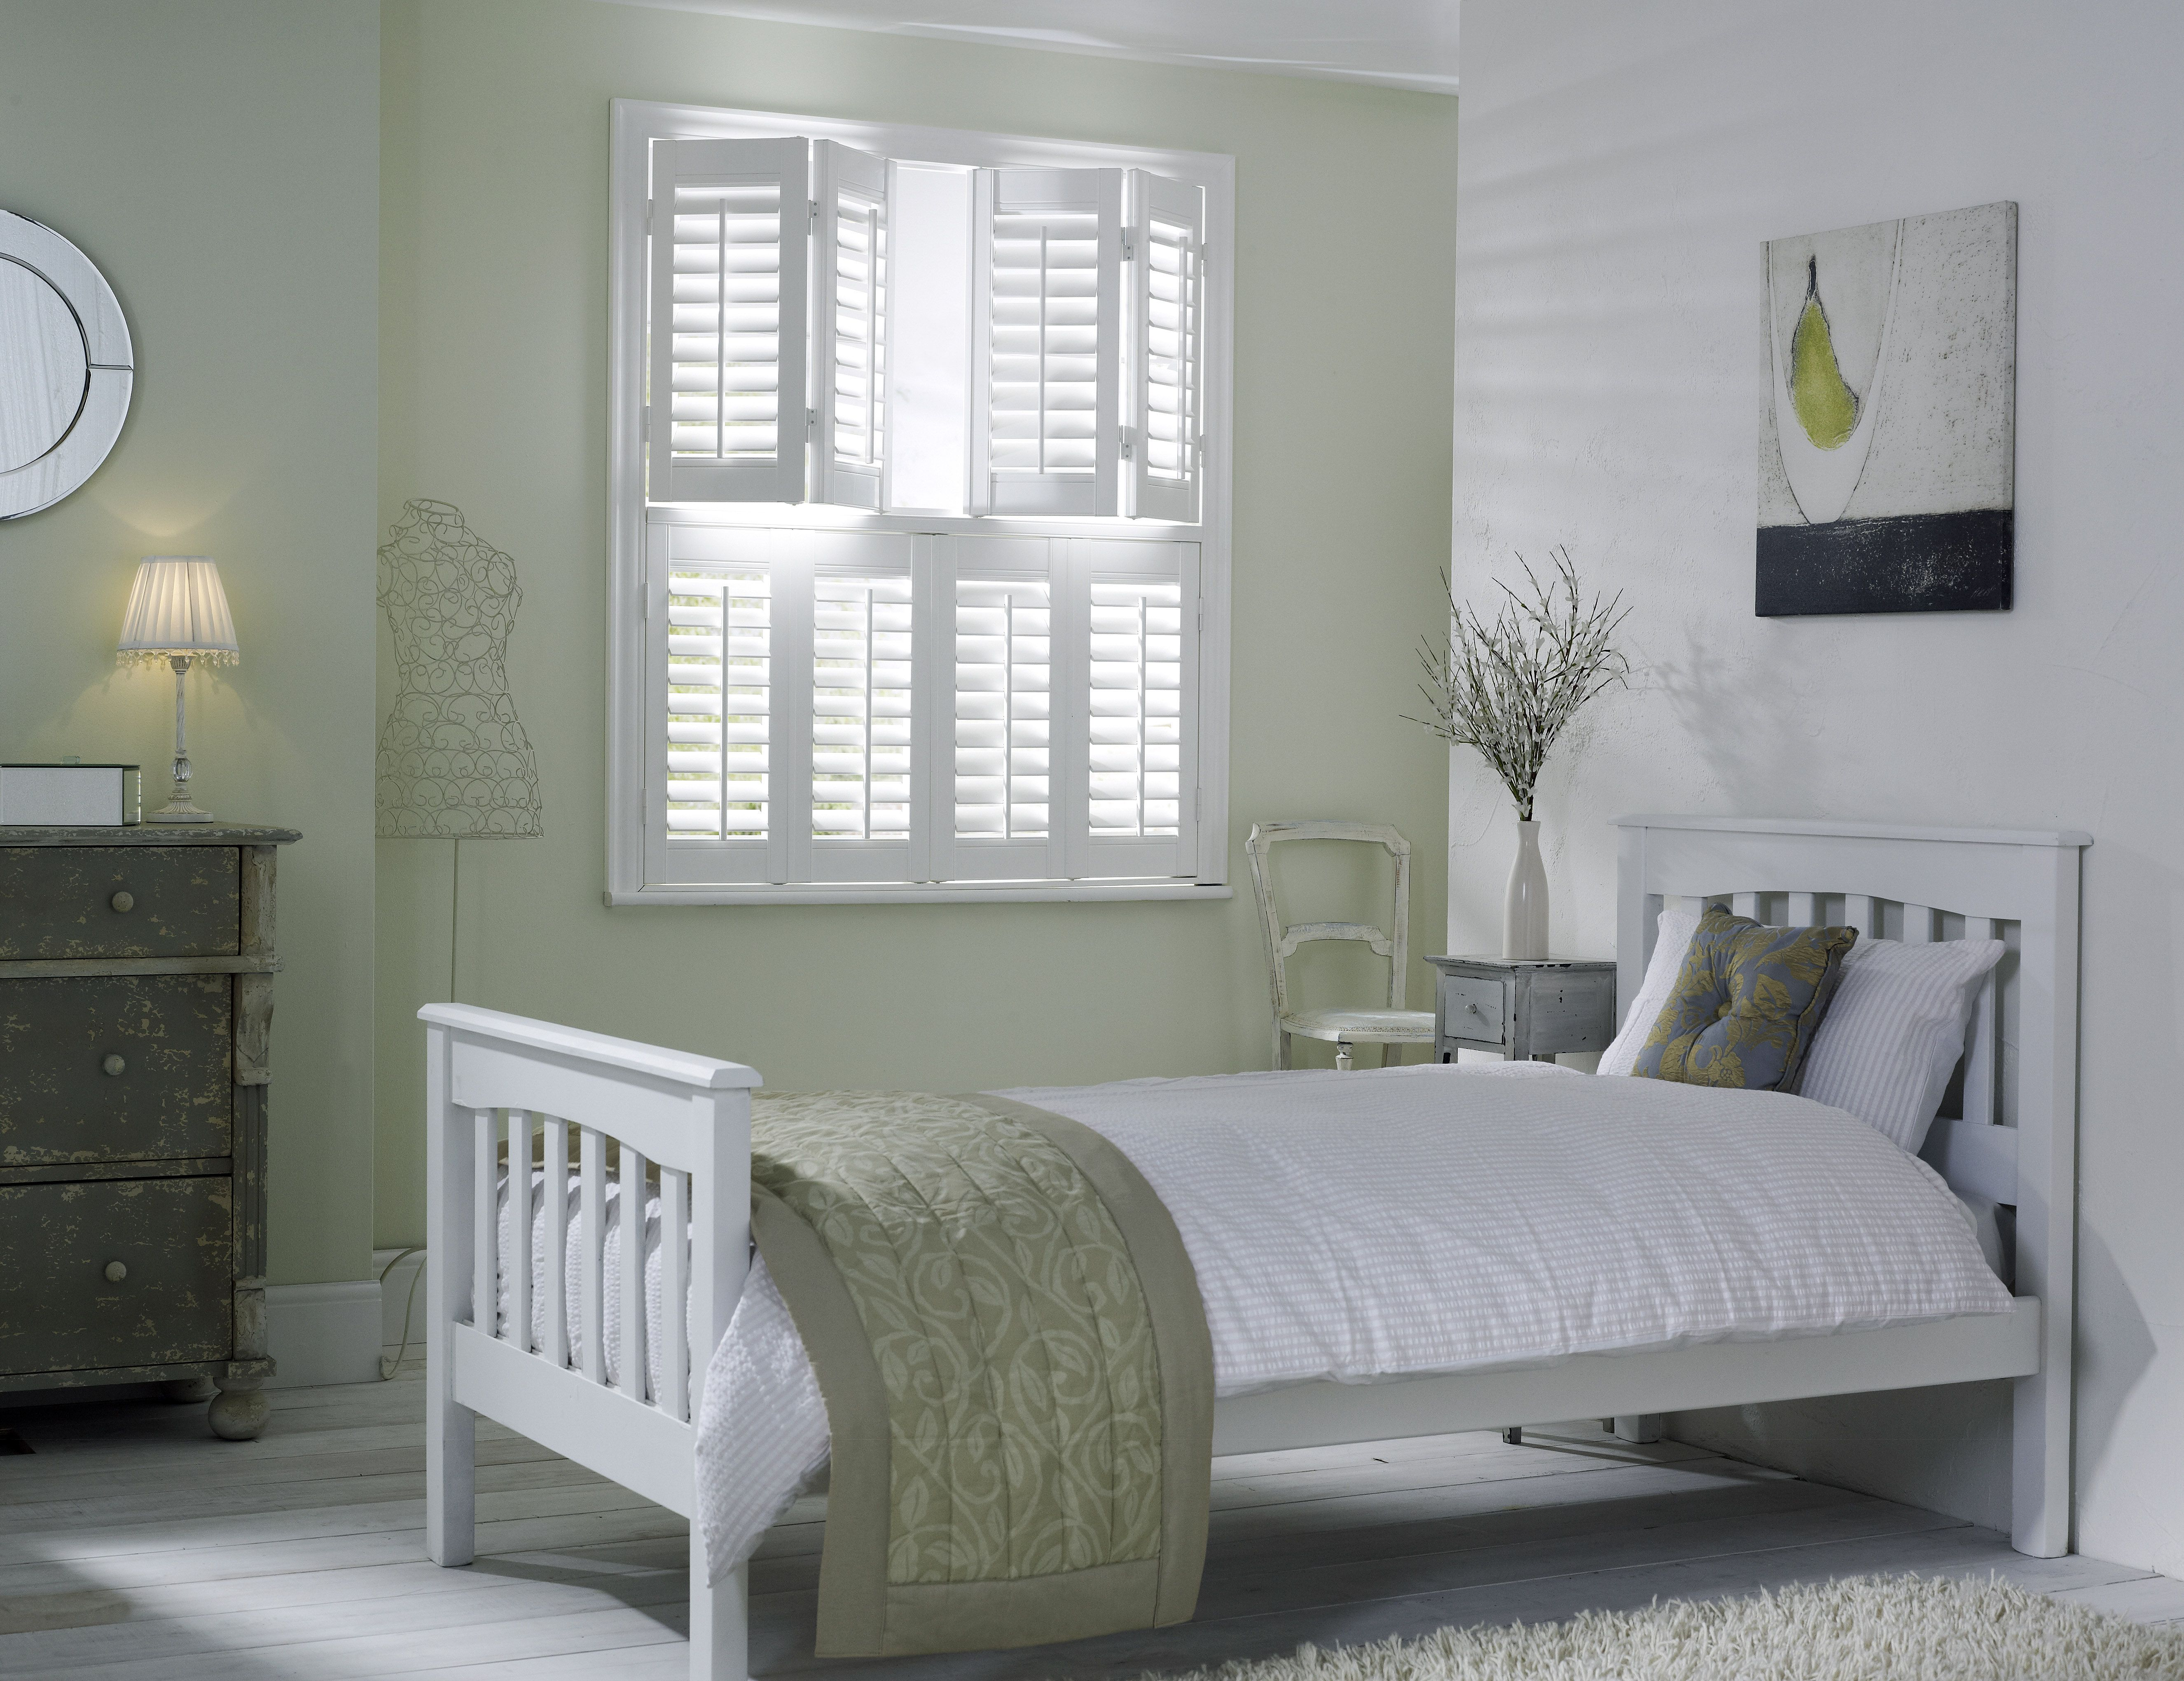 White Shutters From Apollo Blinds Bedroom Shutters Contemporary Bedroom Window